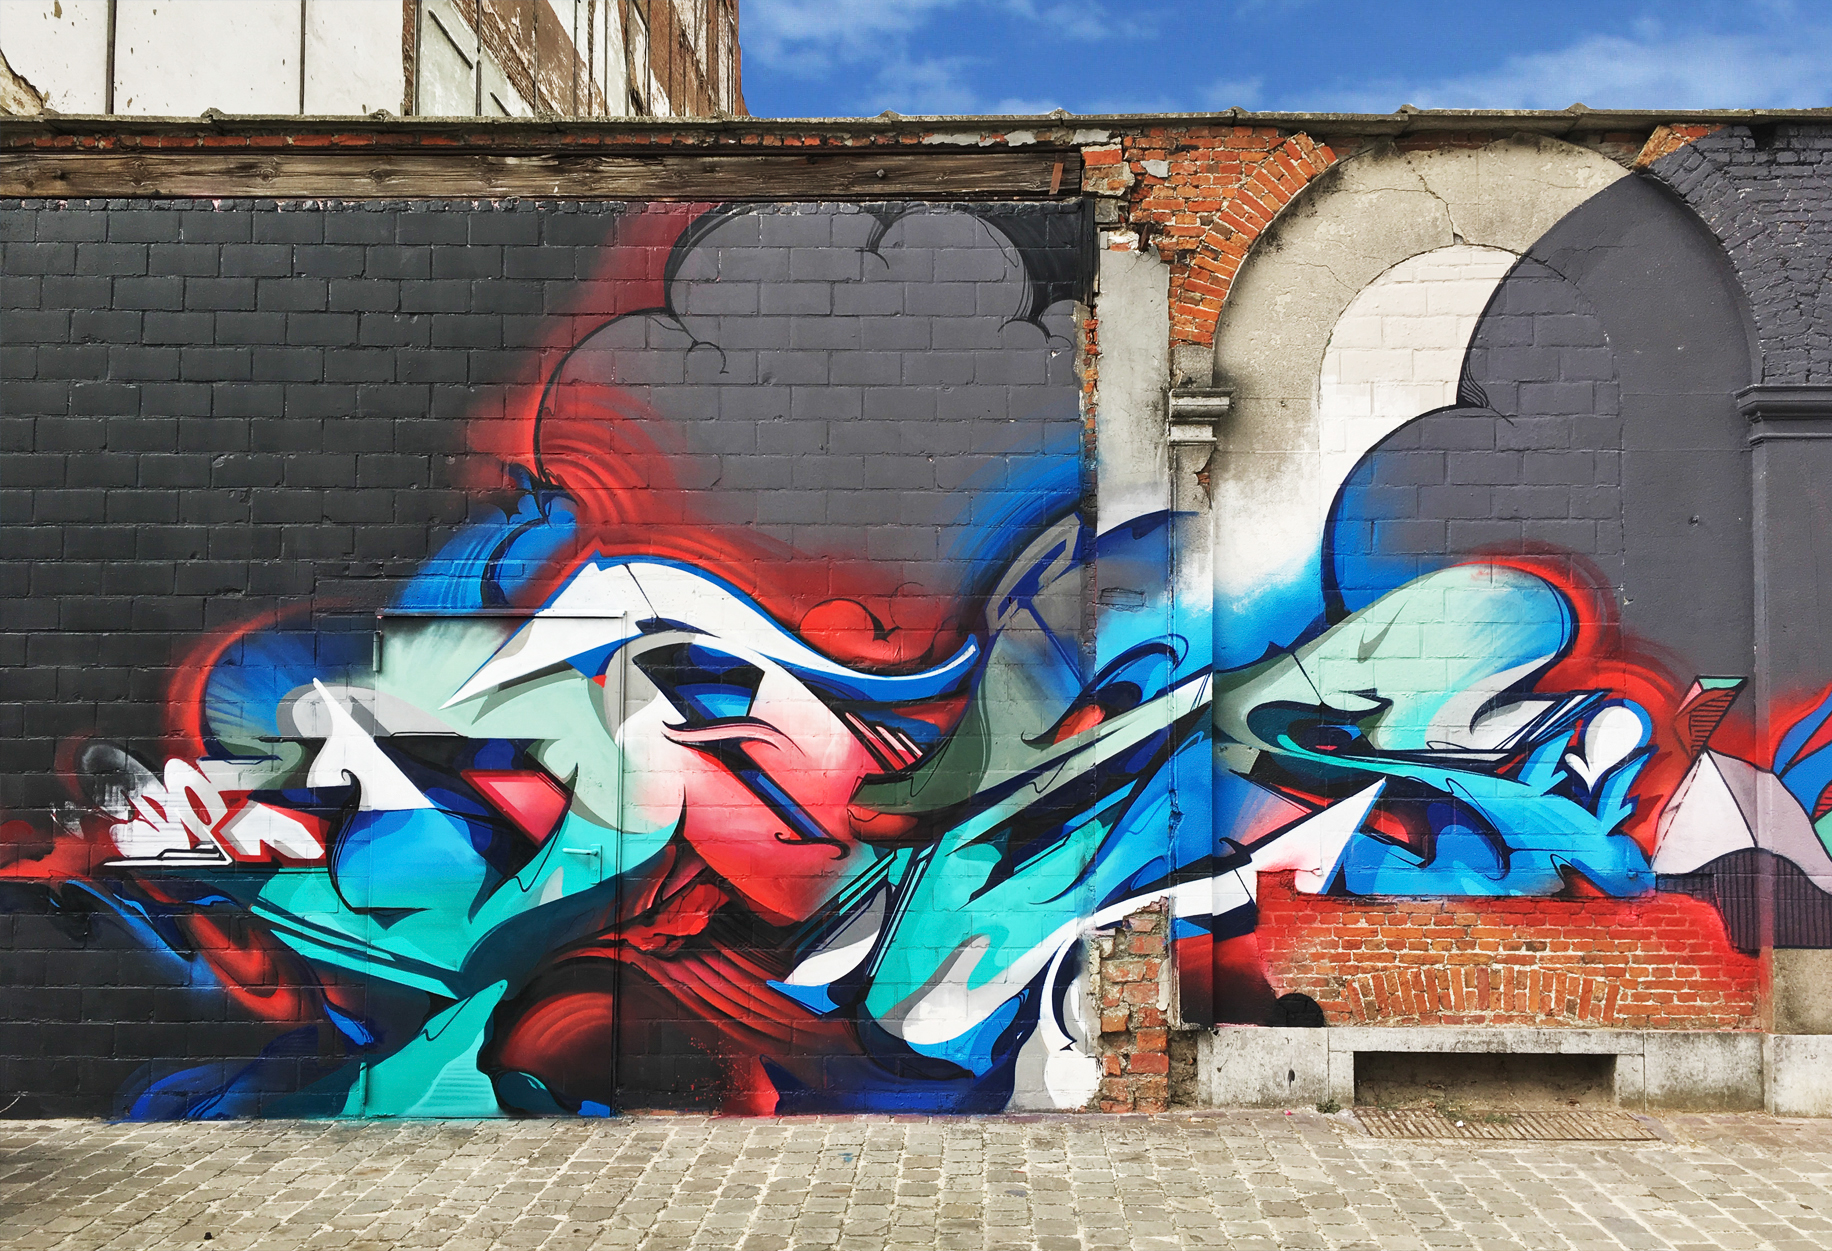 A work by Does - Antwerp,-Belgium-2018mc4